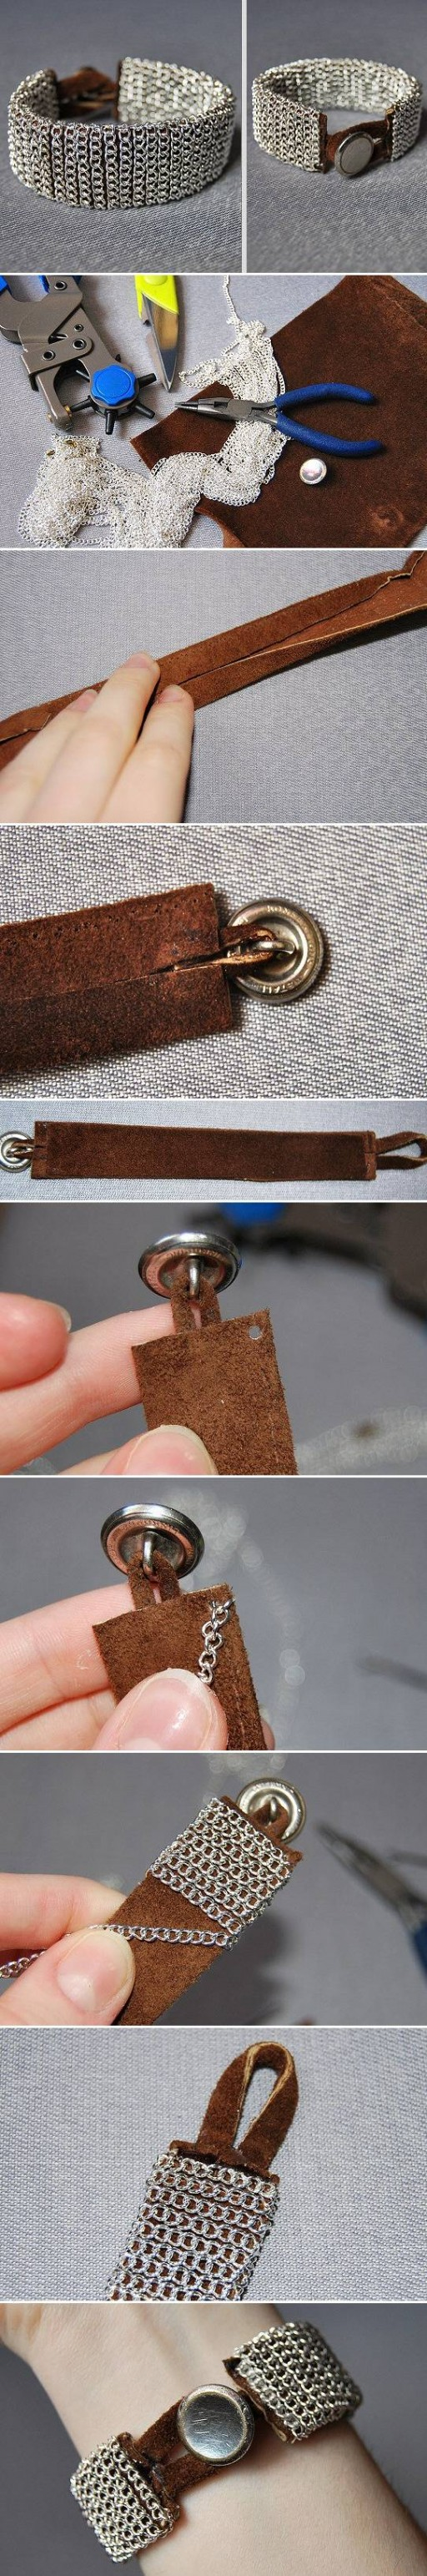 How To Make beautiful silver wrist bands step by step DIY tutorial instructions | How To Instructions